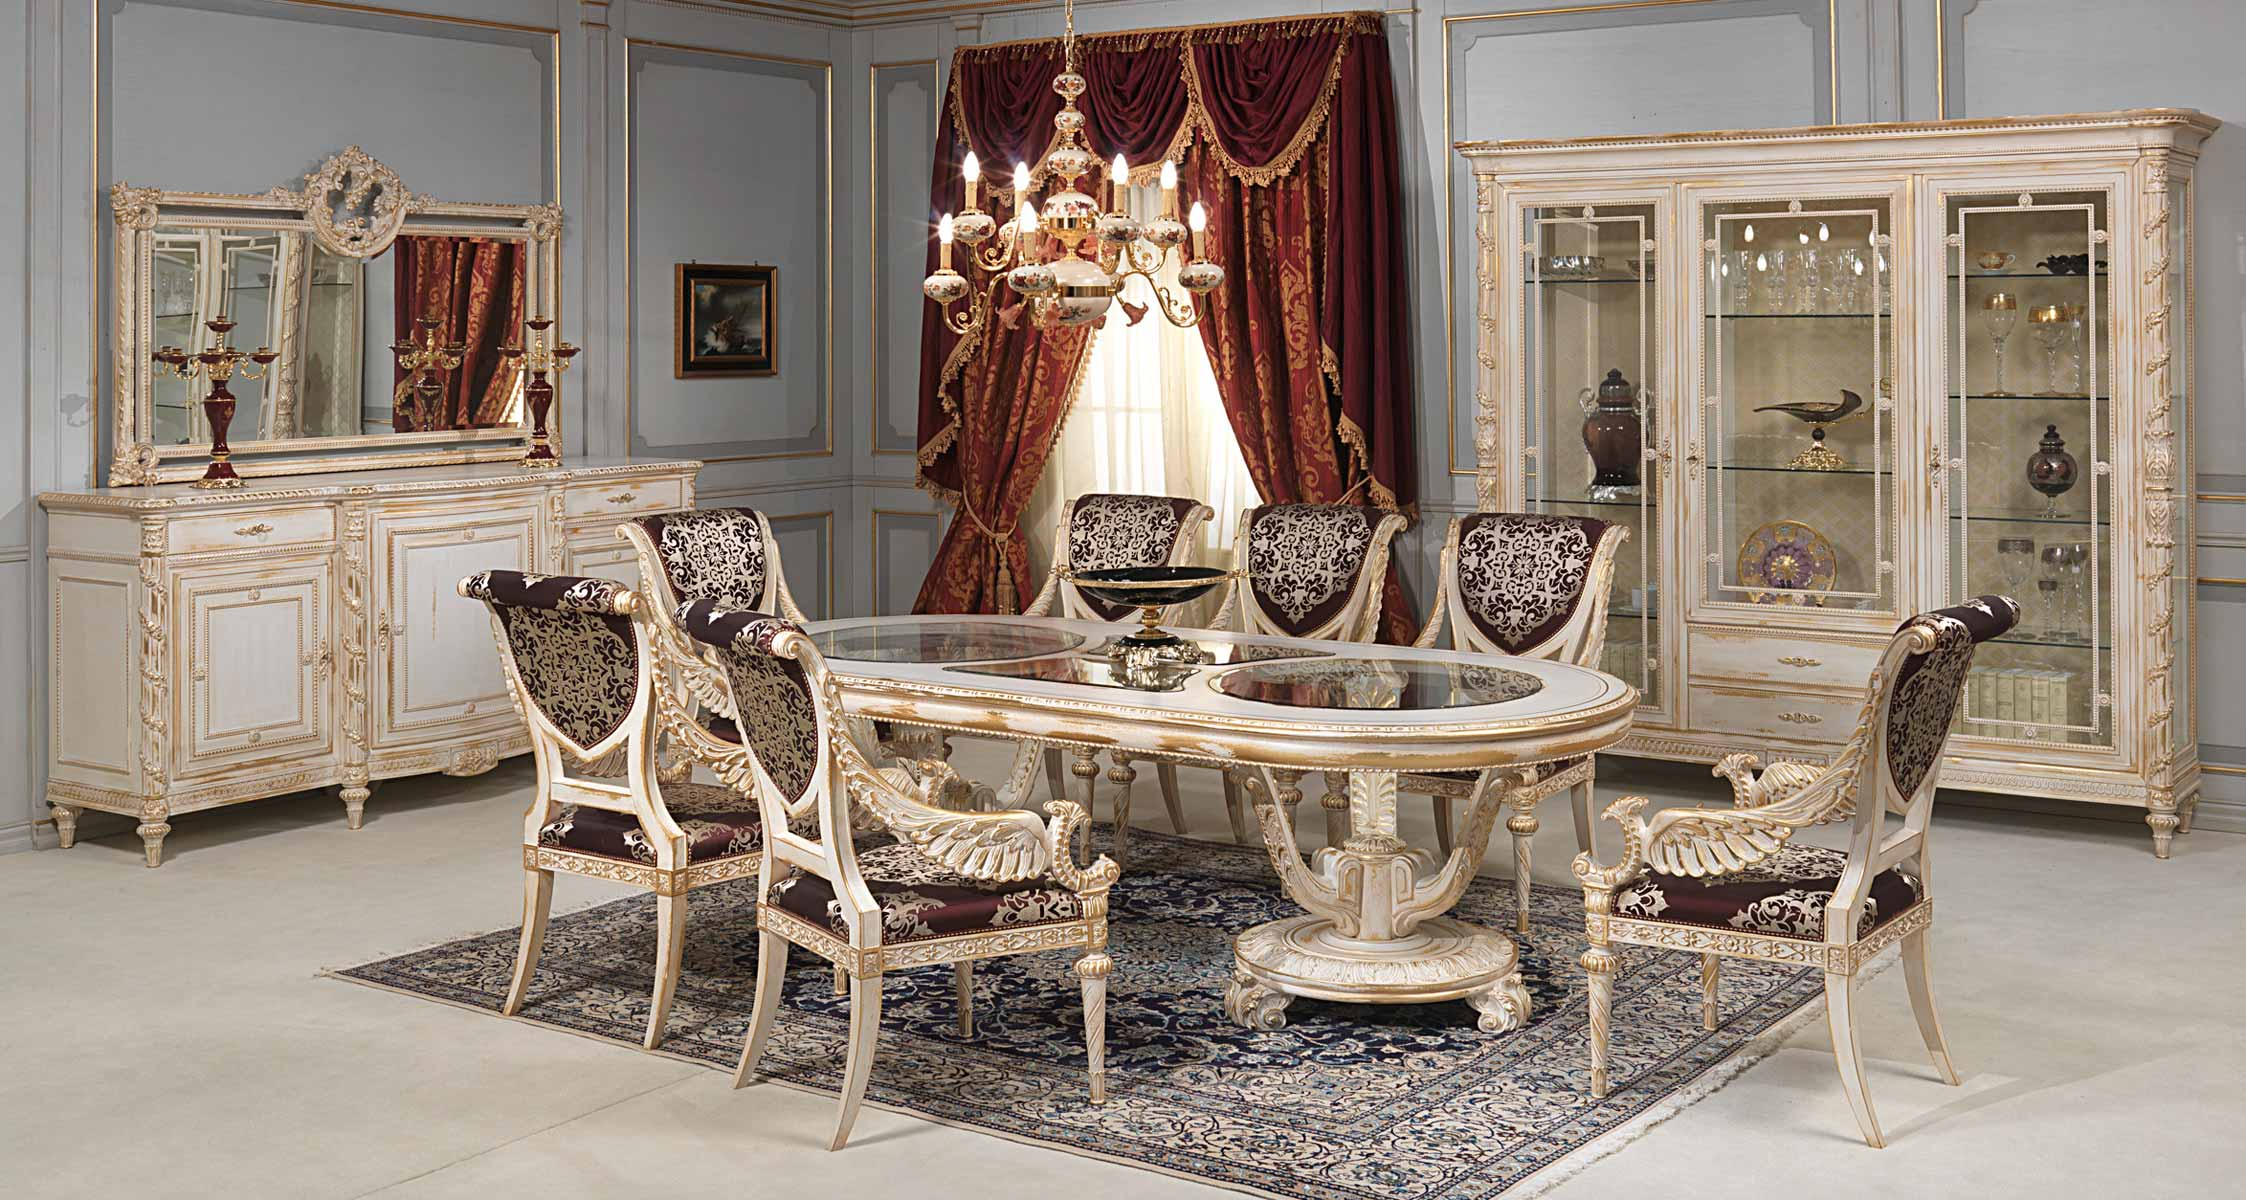 White And Gold Dining Room In Louis Xvi Style Vimercati